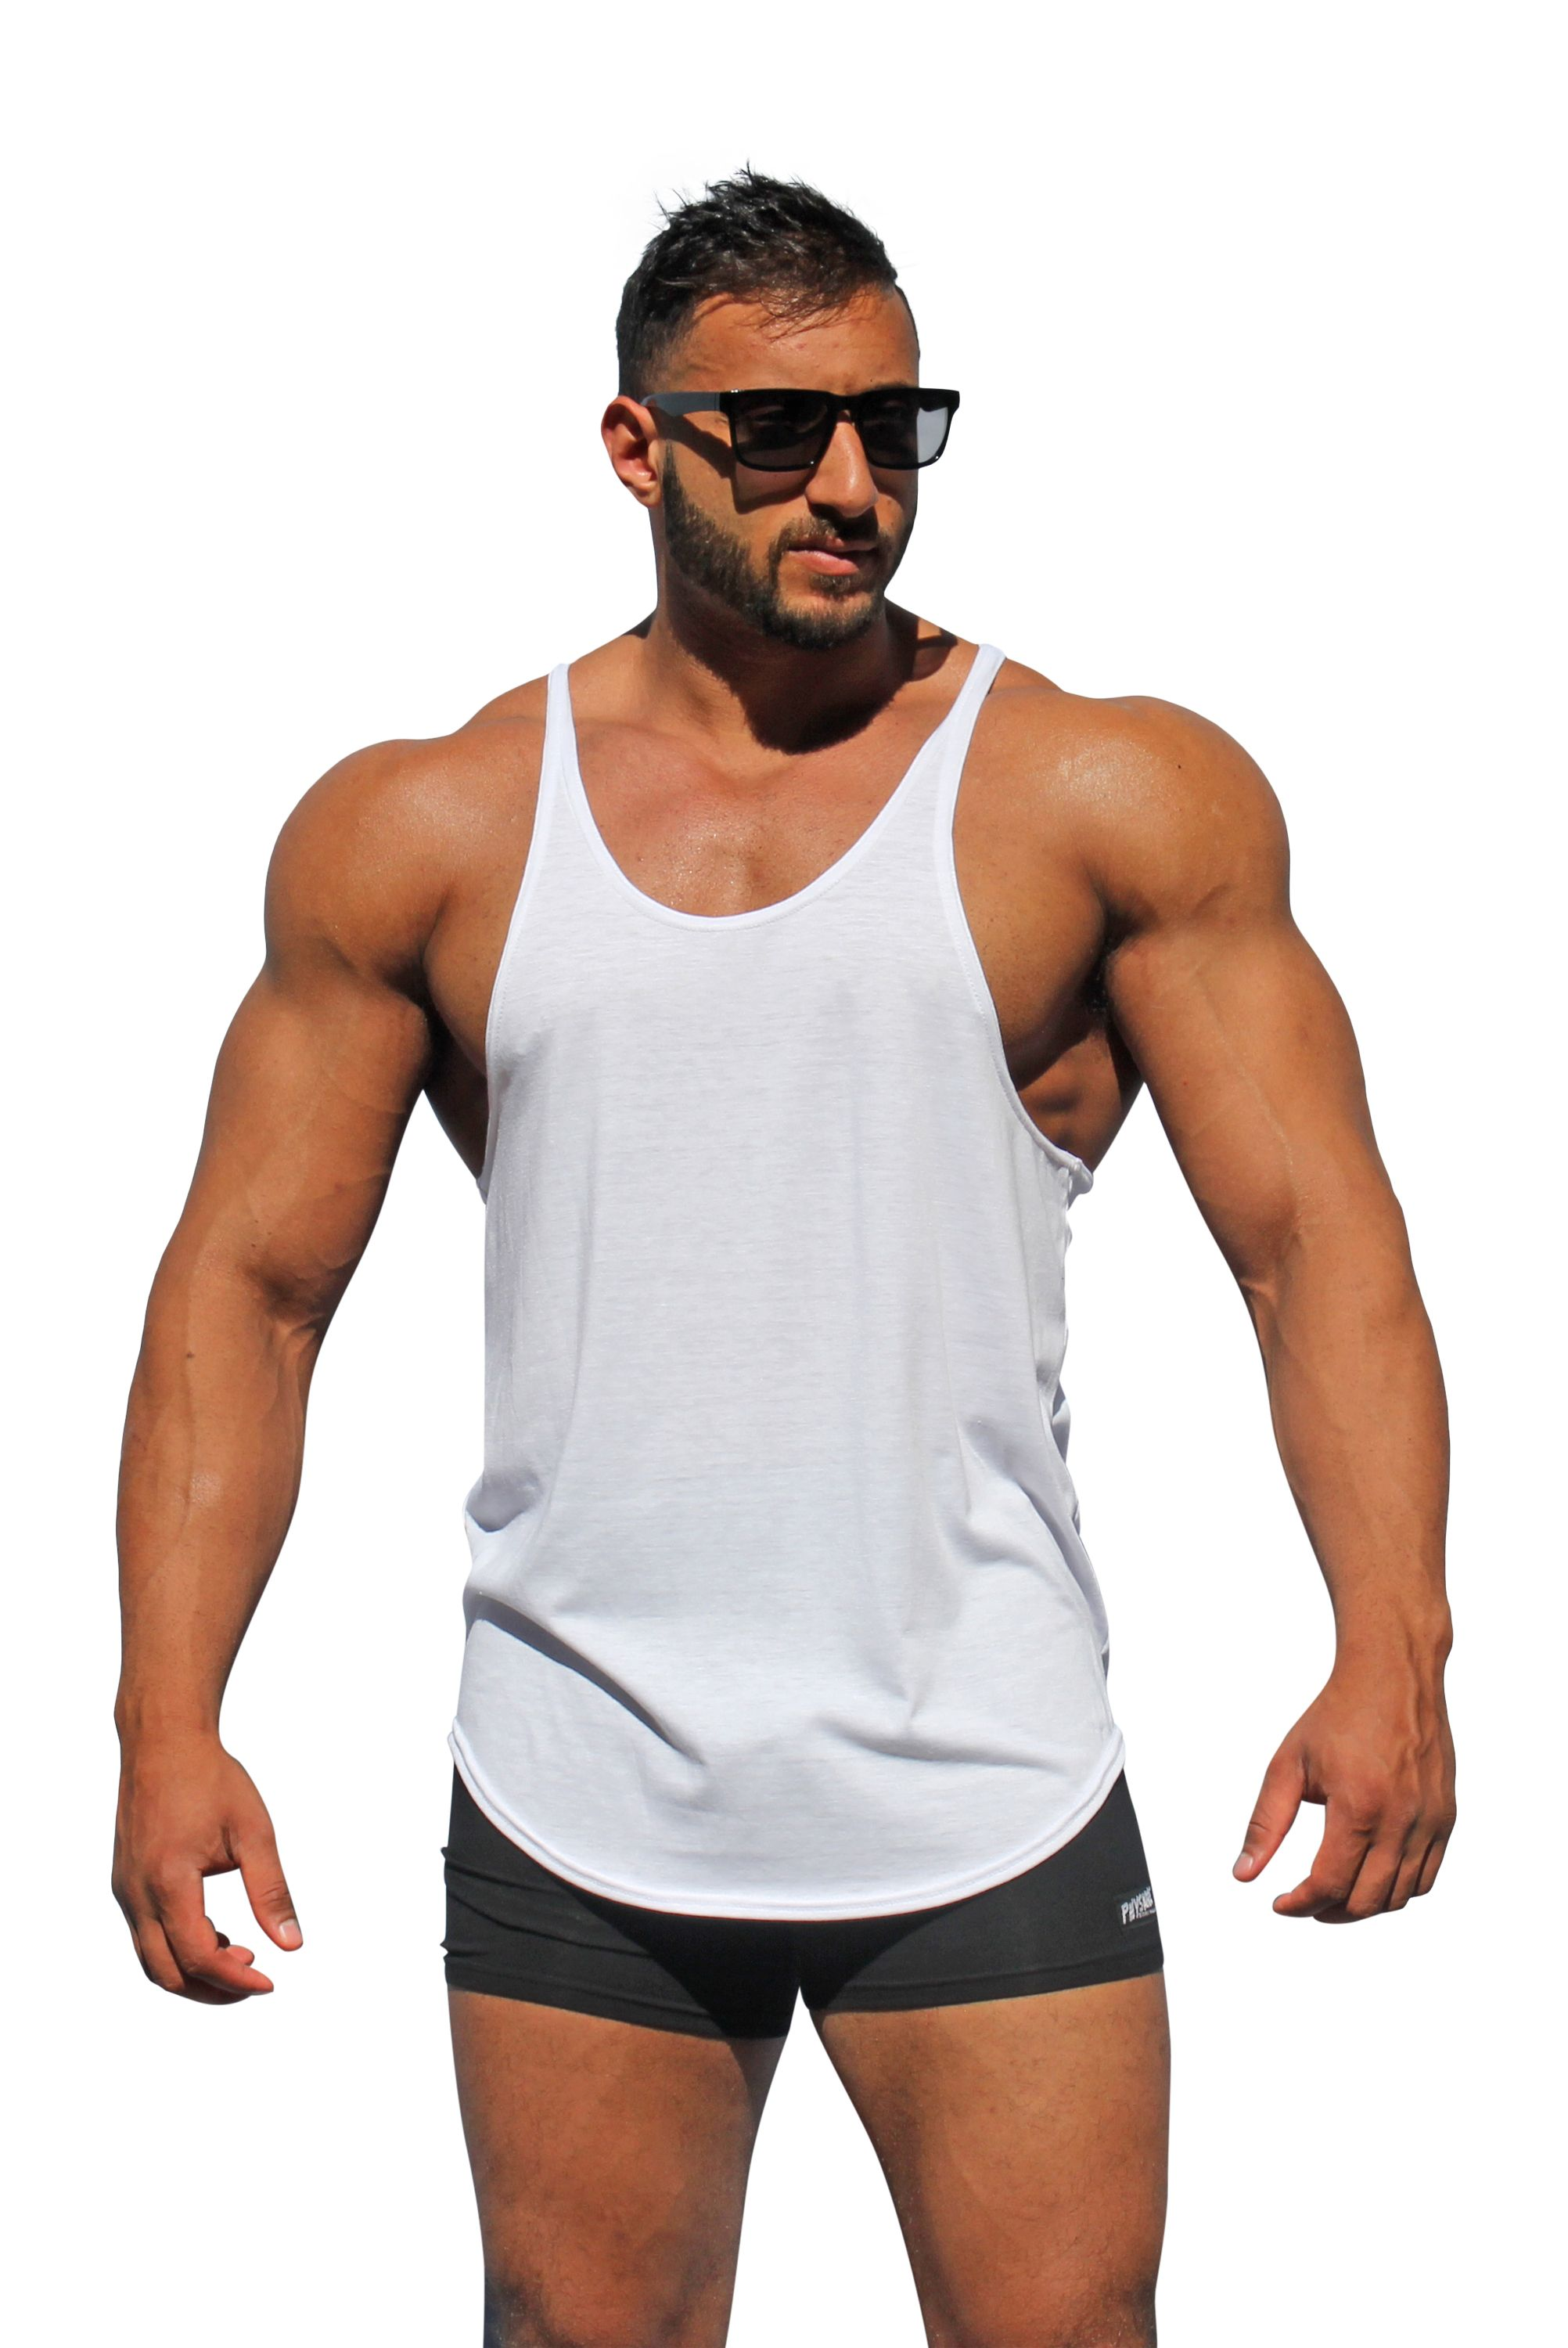 673d6653efb75 Order 3 or more for only $12.98 each. Style 725 - Men's Y-Back Stringer Tank  Top. Improved style & fit longer with thinner straps. Sale $12.98 ea.